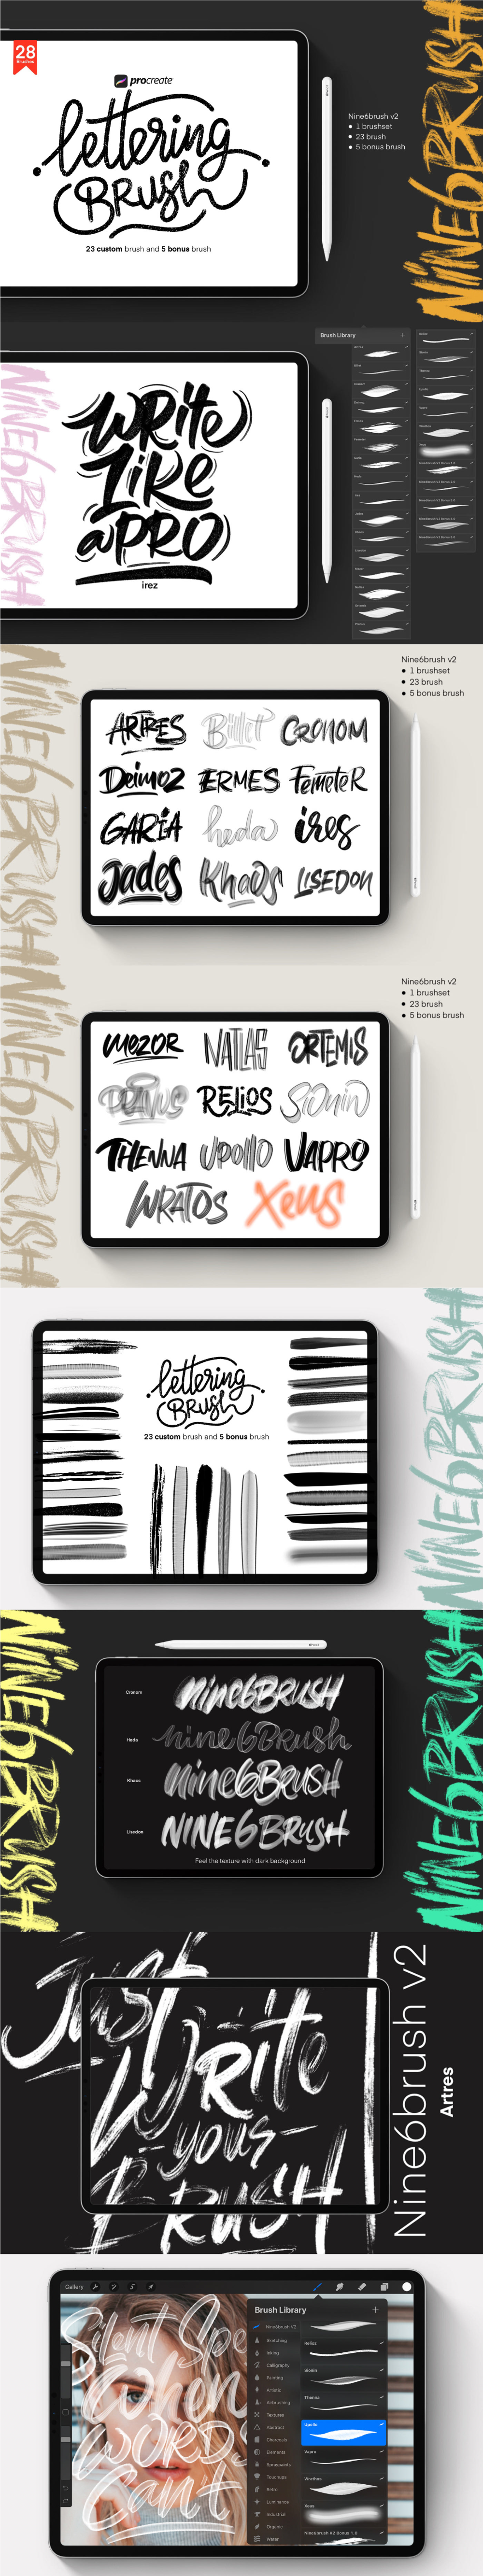 Download FREE PROCREATE LETTERING BRUSHES on Behance